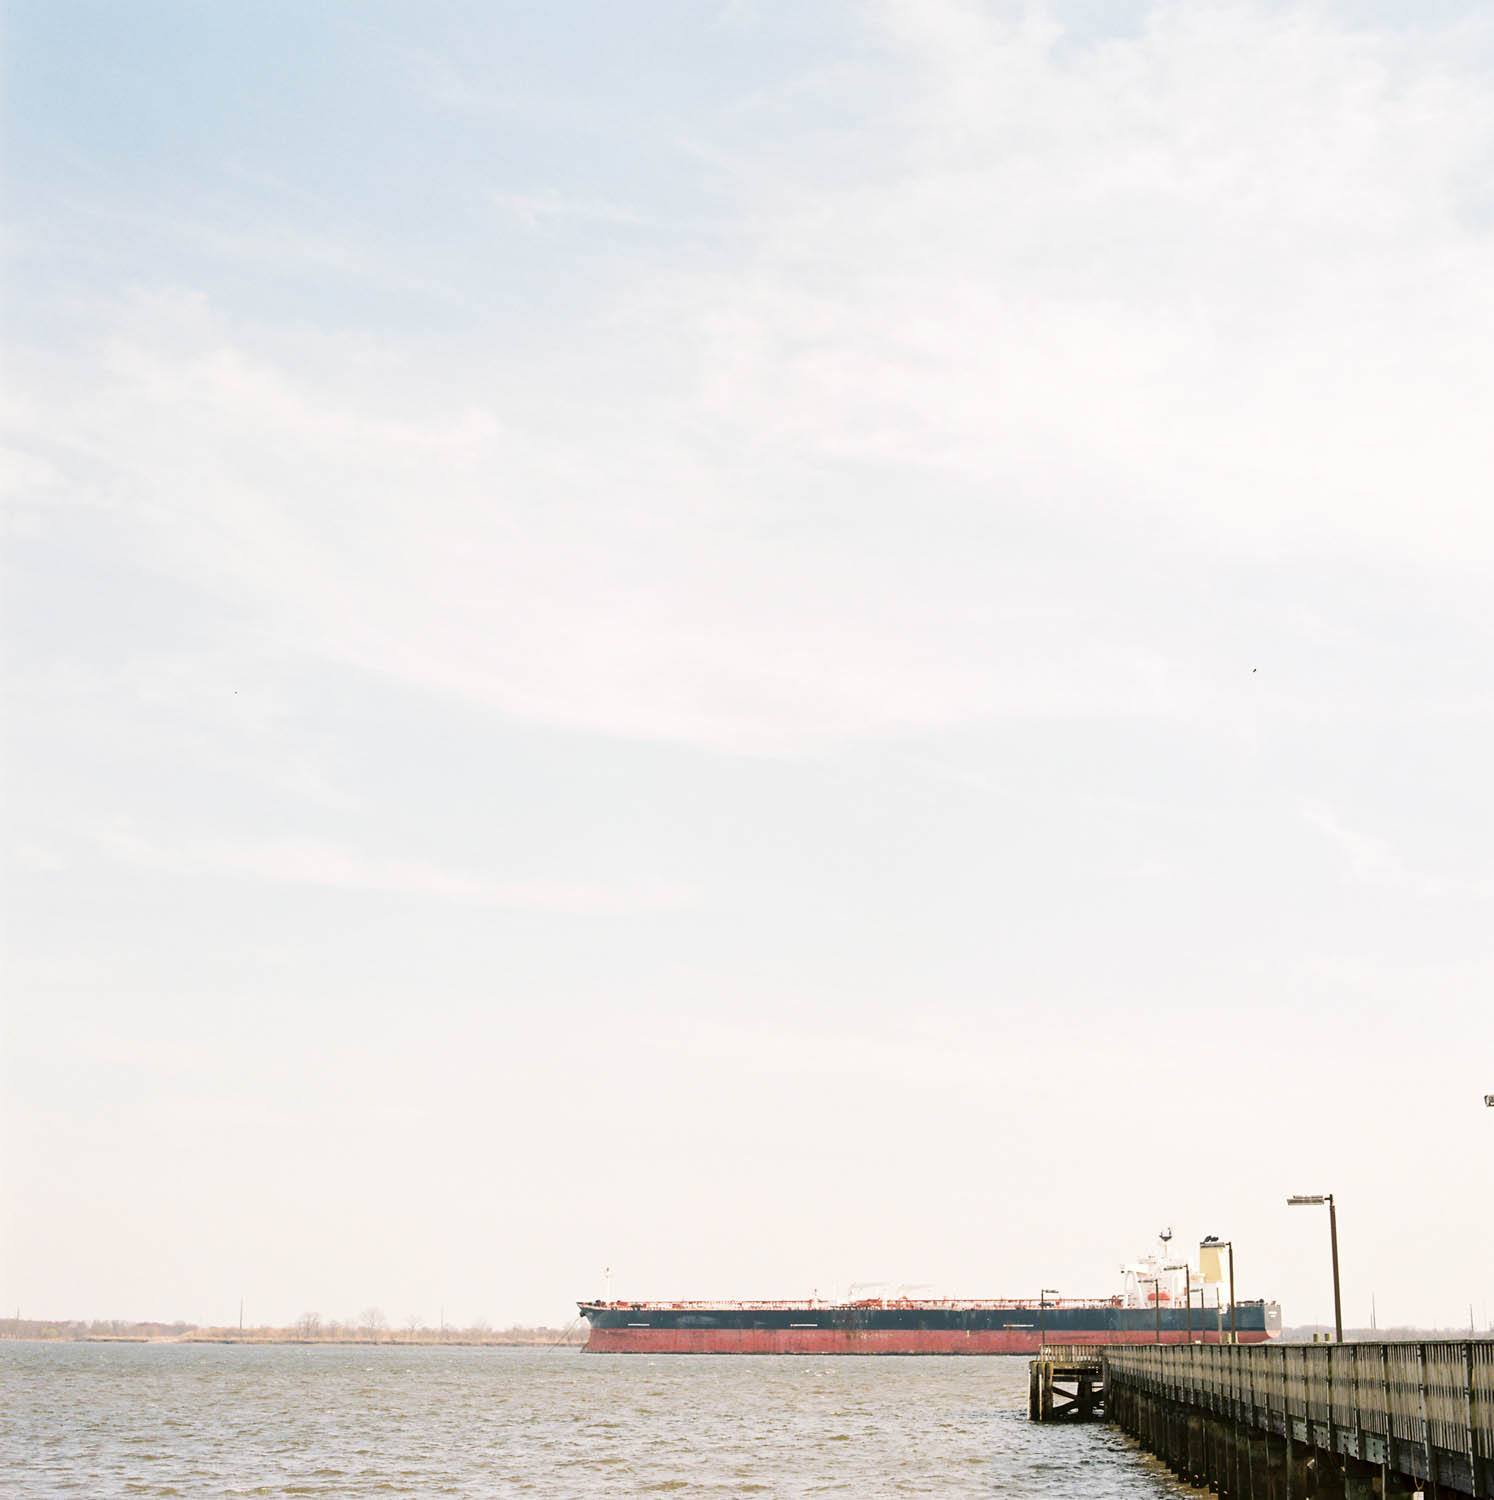 A shipping barge on medium format film